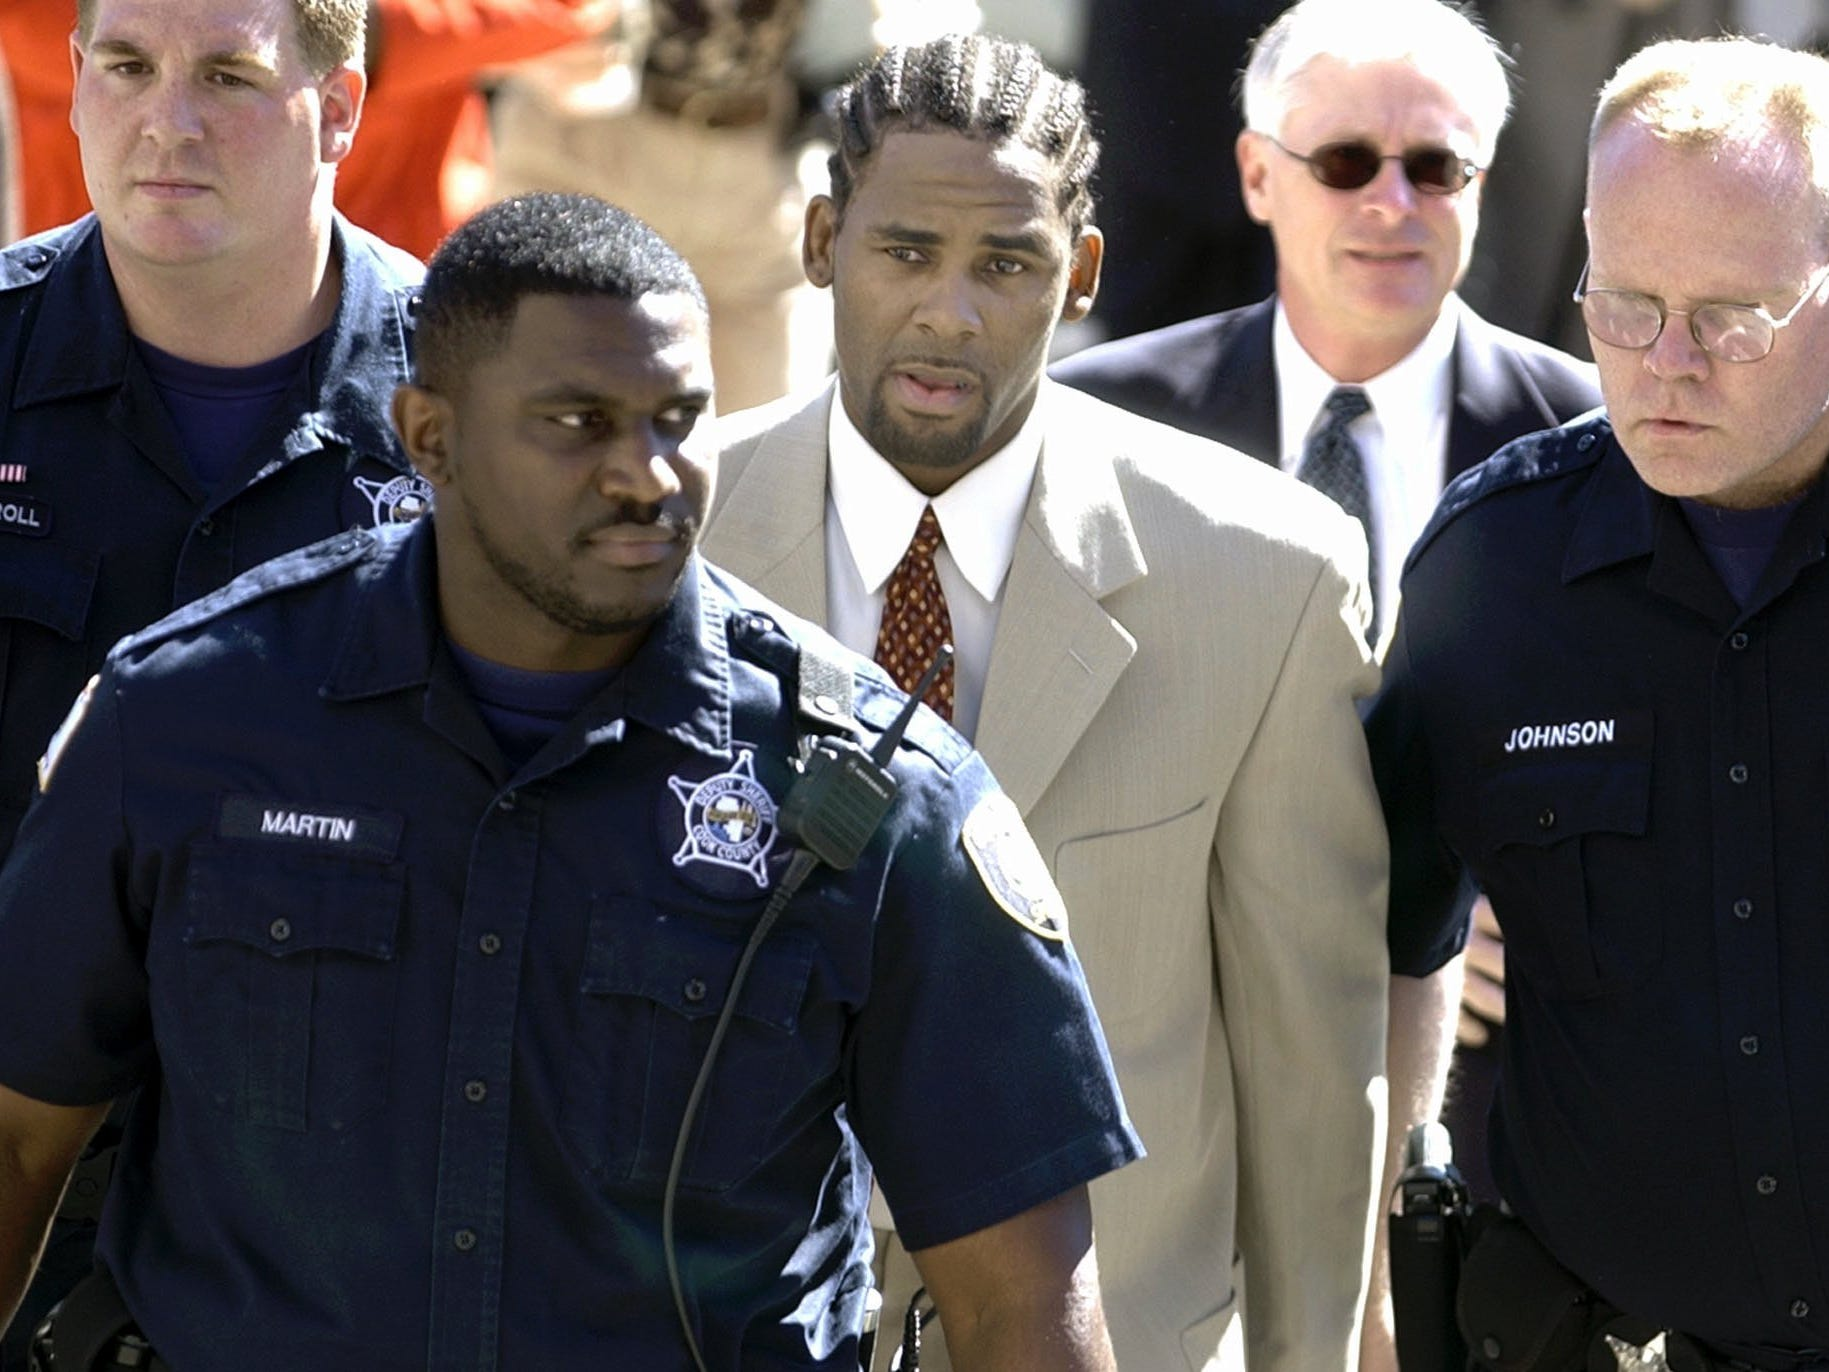 Police officials surround R. Kelly as he arrives at a Chicago court for an appearance on Aug. 7, 2002.  Kelly, a Chicago-area resident, is accused of appearing on a videotape that prosecutors say shows him sexually involved with an underage girl. Kelly has said the man on the tape is not him.